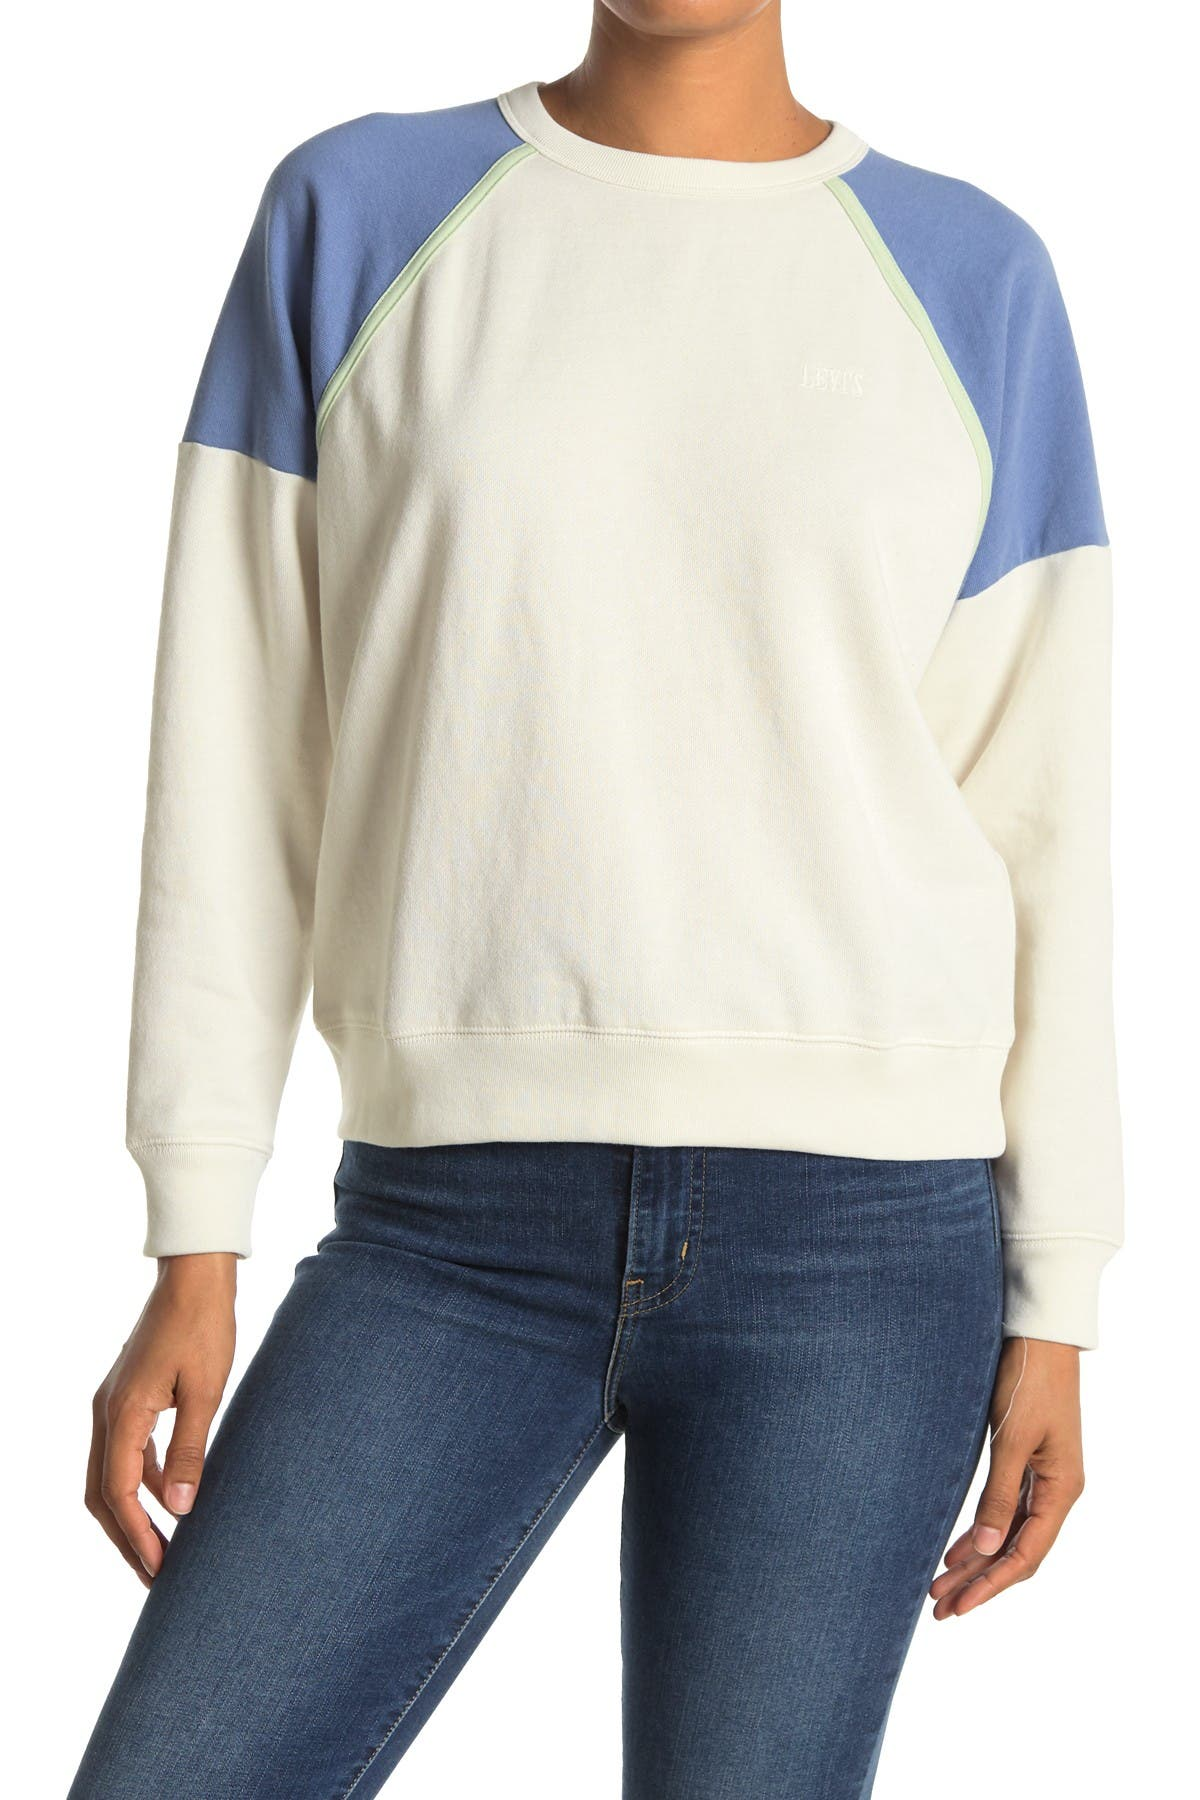 Image of Levi's Everyday Raglan Colorblock Sweatshirt